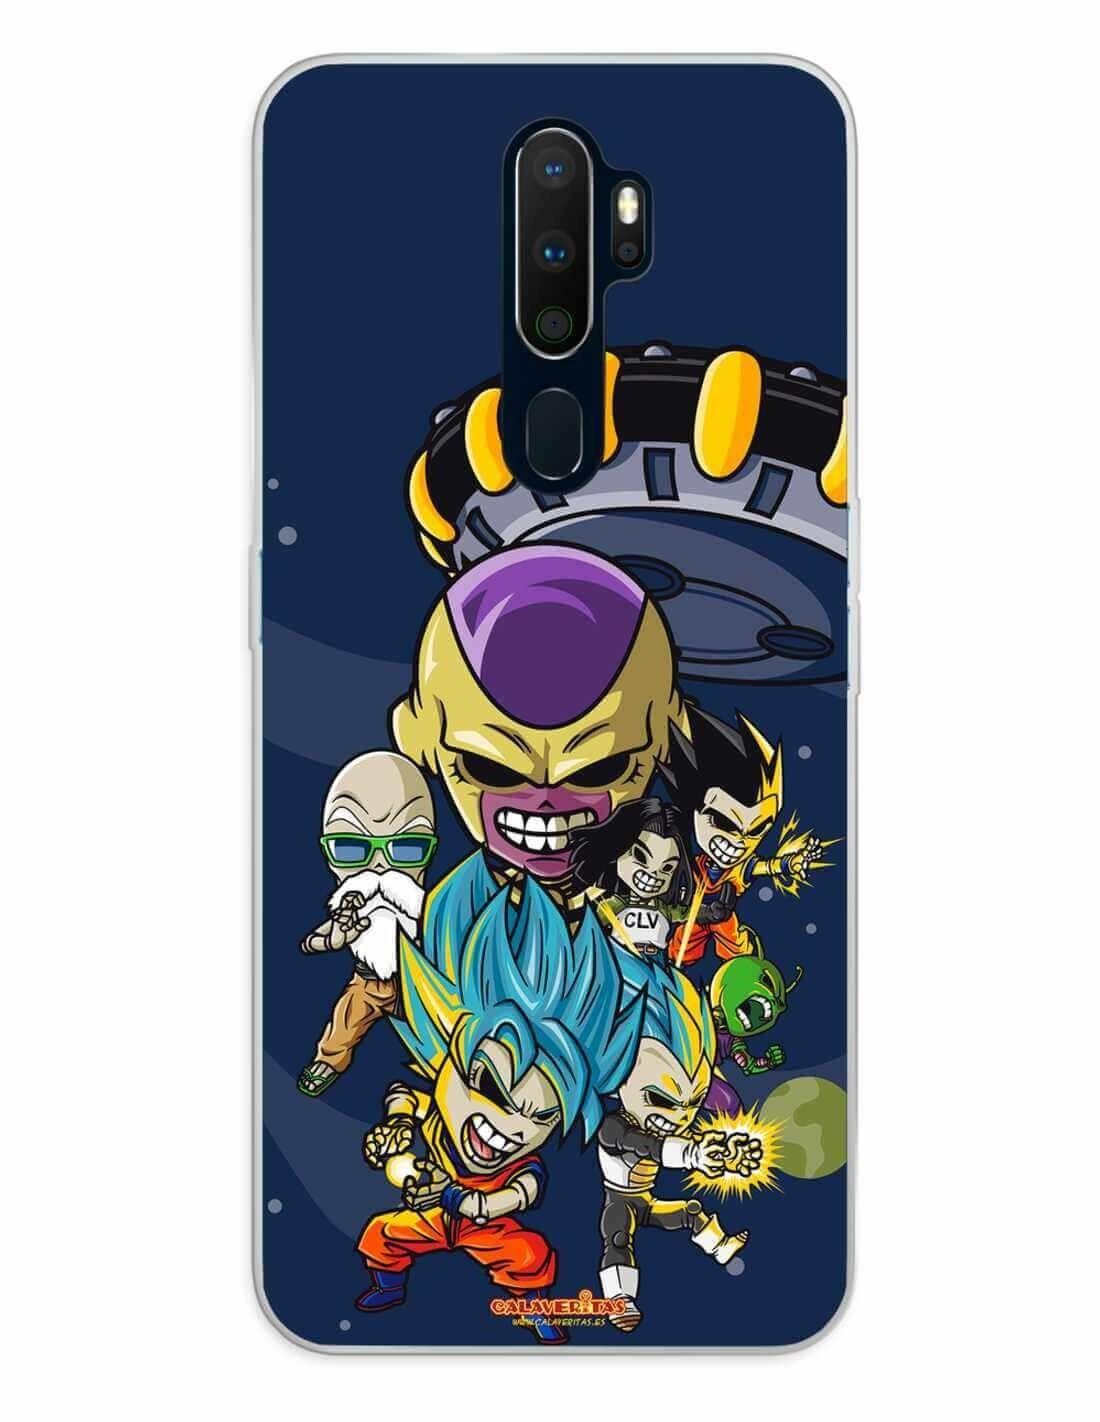 Oppo A5 (2020) / A9 (2020) Funda Silicona Calaveritas Skull Fighters 4